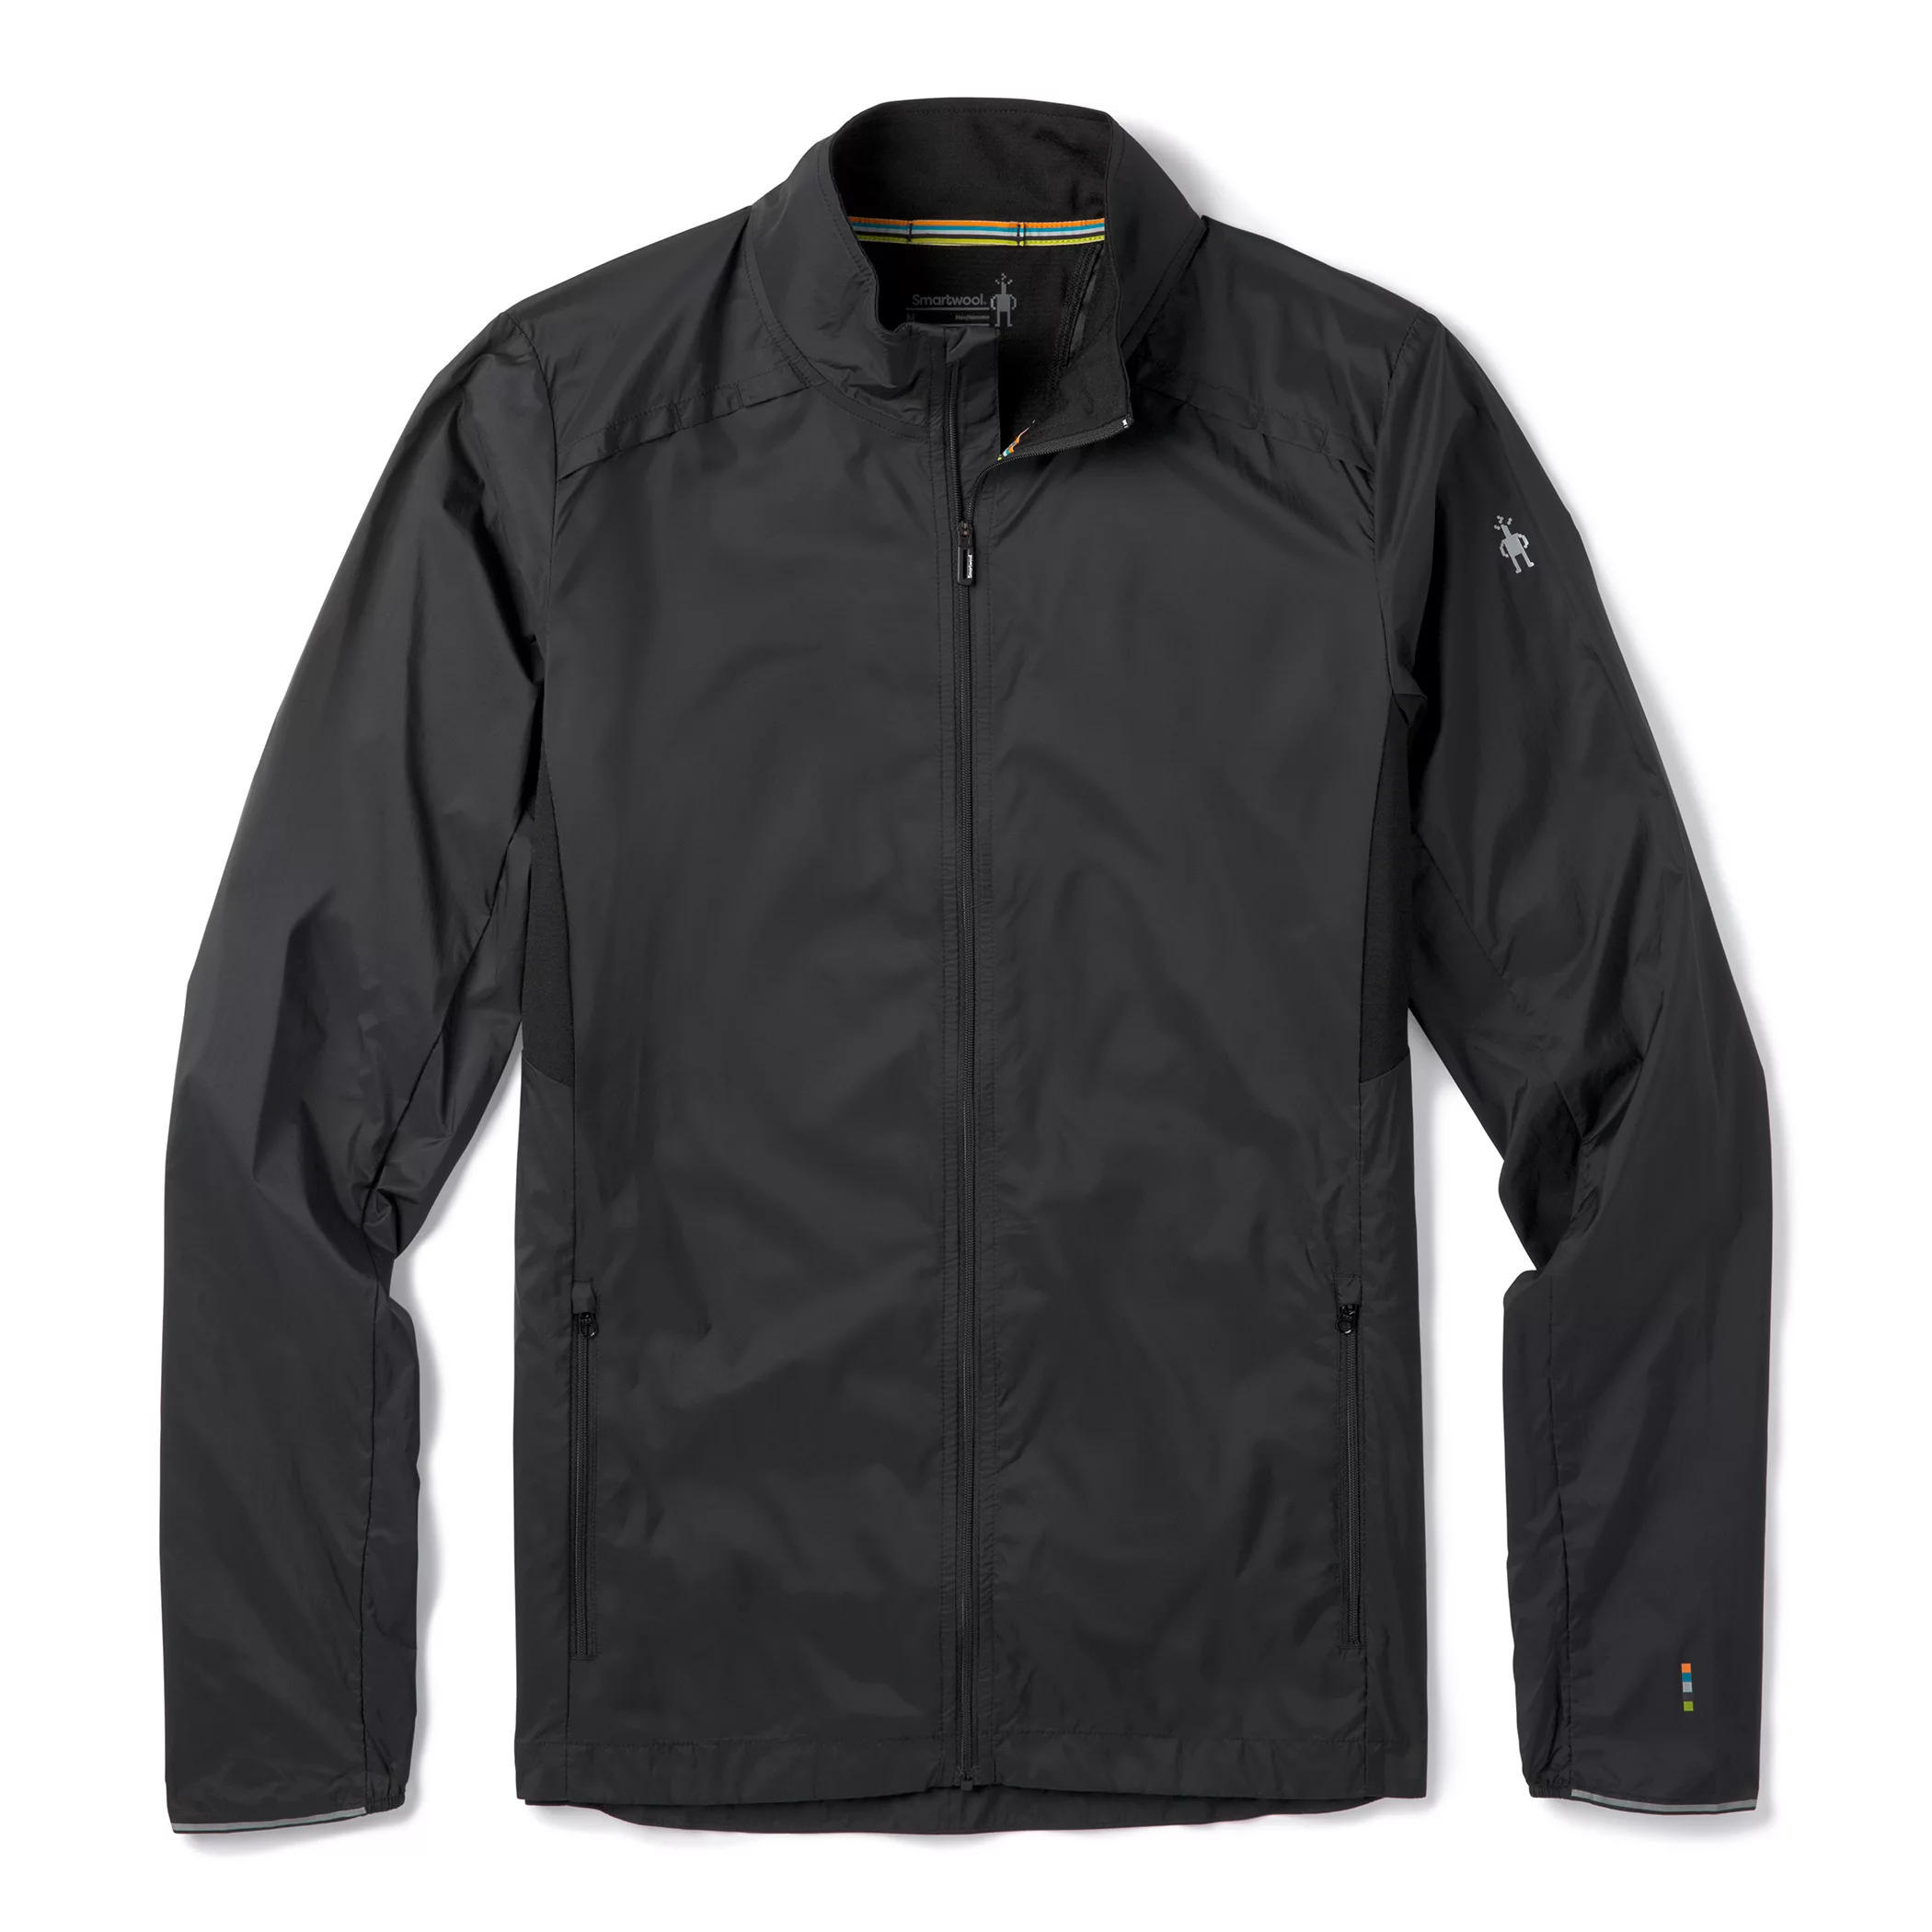 Merino Sport Ultra Light Jacket - Men's